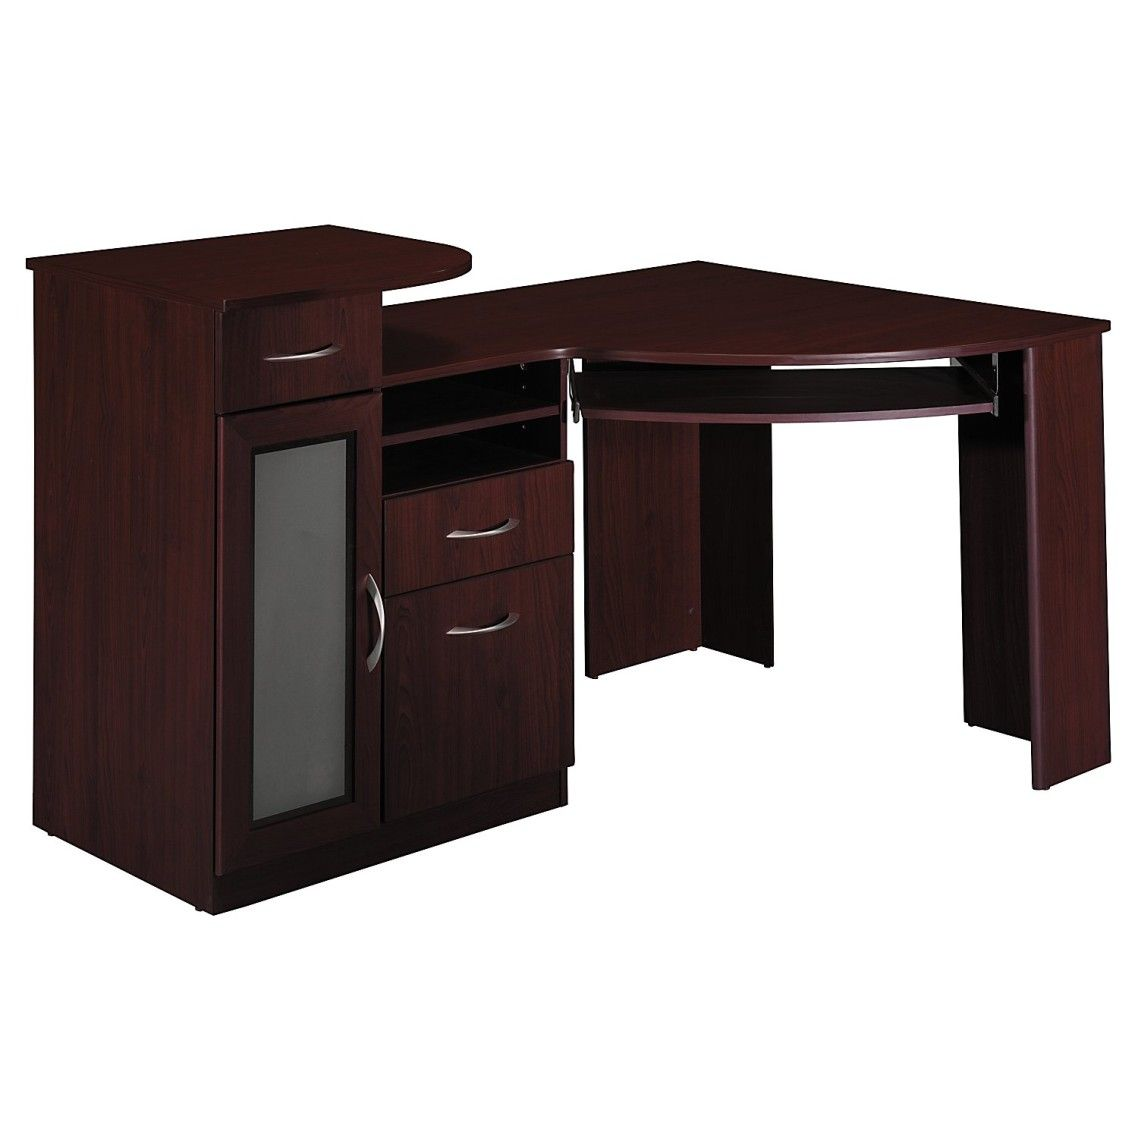 Astounding Designer Desk For Home Ideas With Corner Computer Table And Dark  Brown Color Table Cabinets